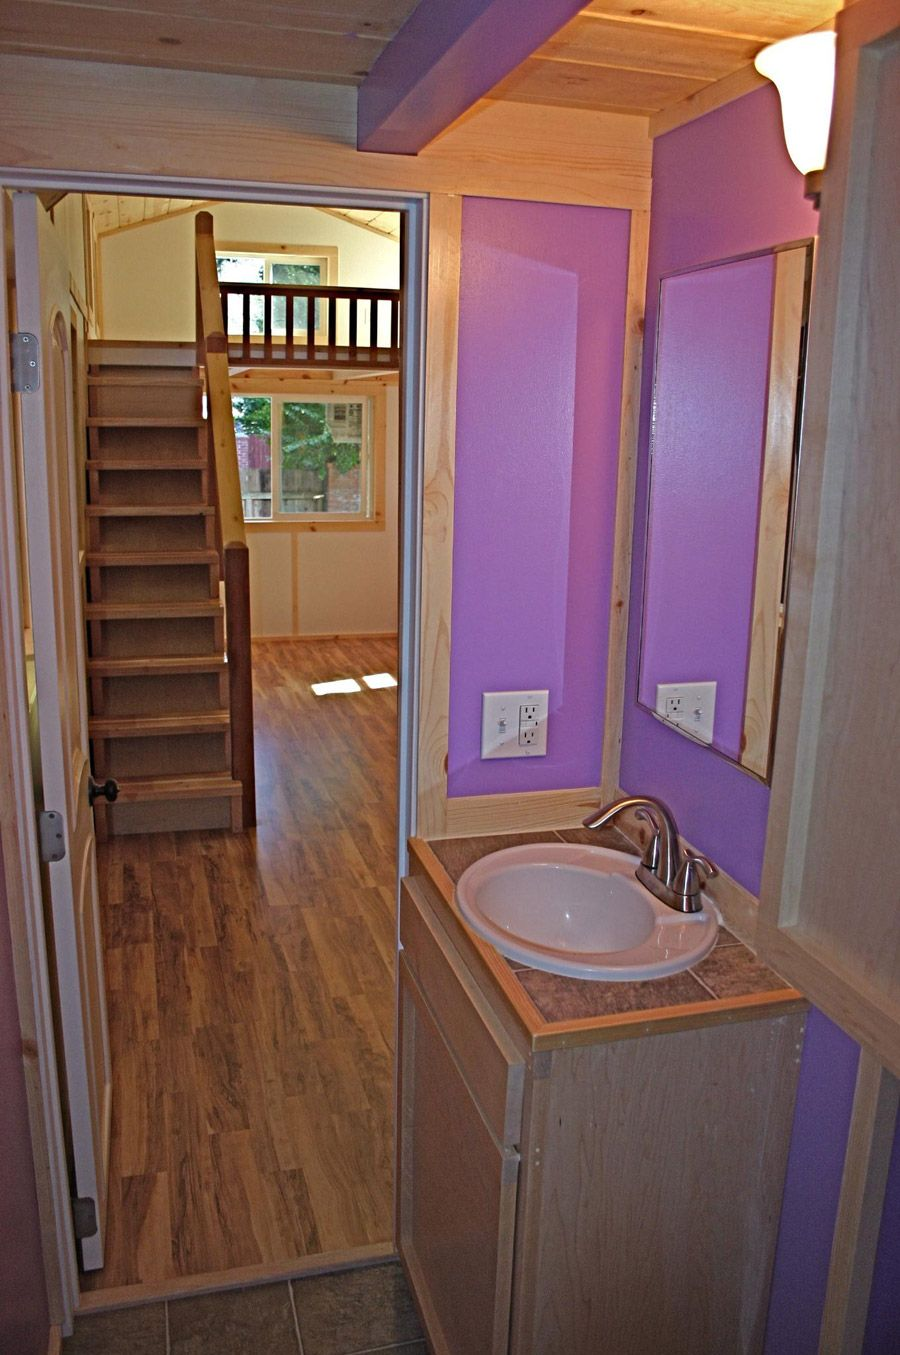 Tiny houses on wheels for sale california - A 355 Square Feet Tiny House On Wheels In Felton California Designed By Molecule Tiny Homes